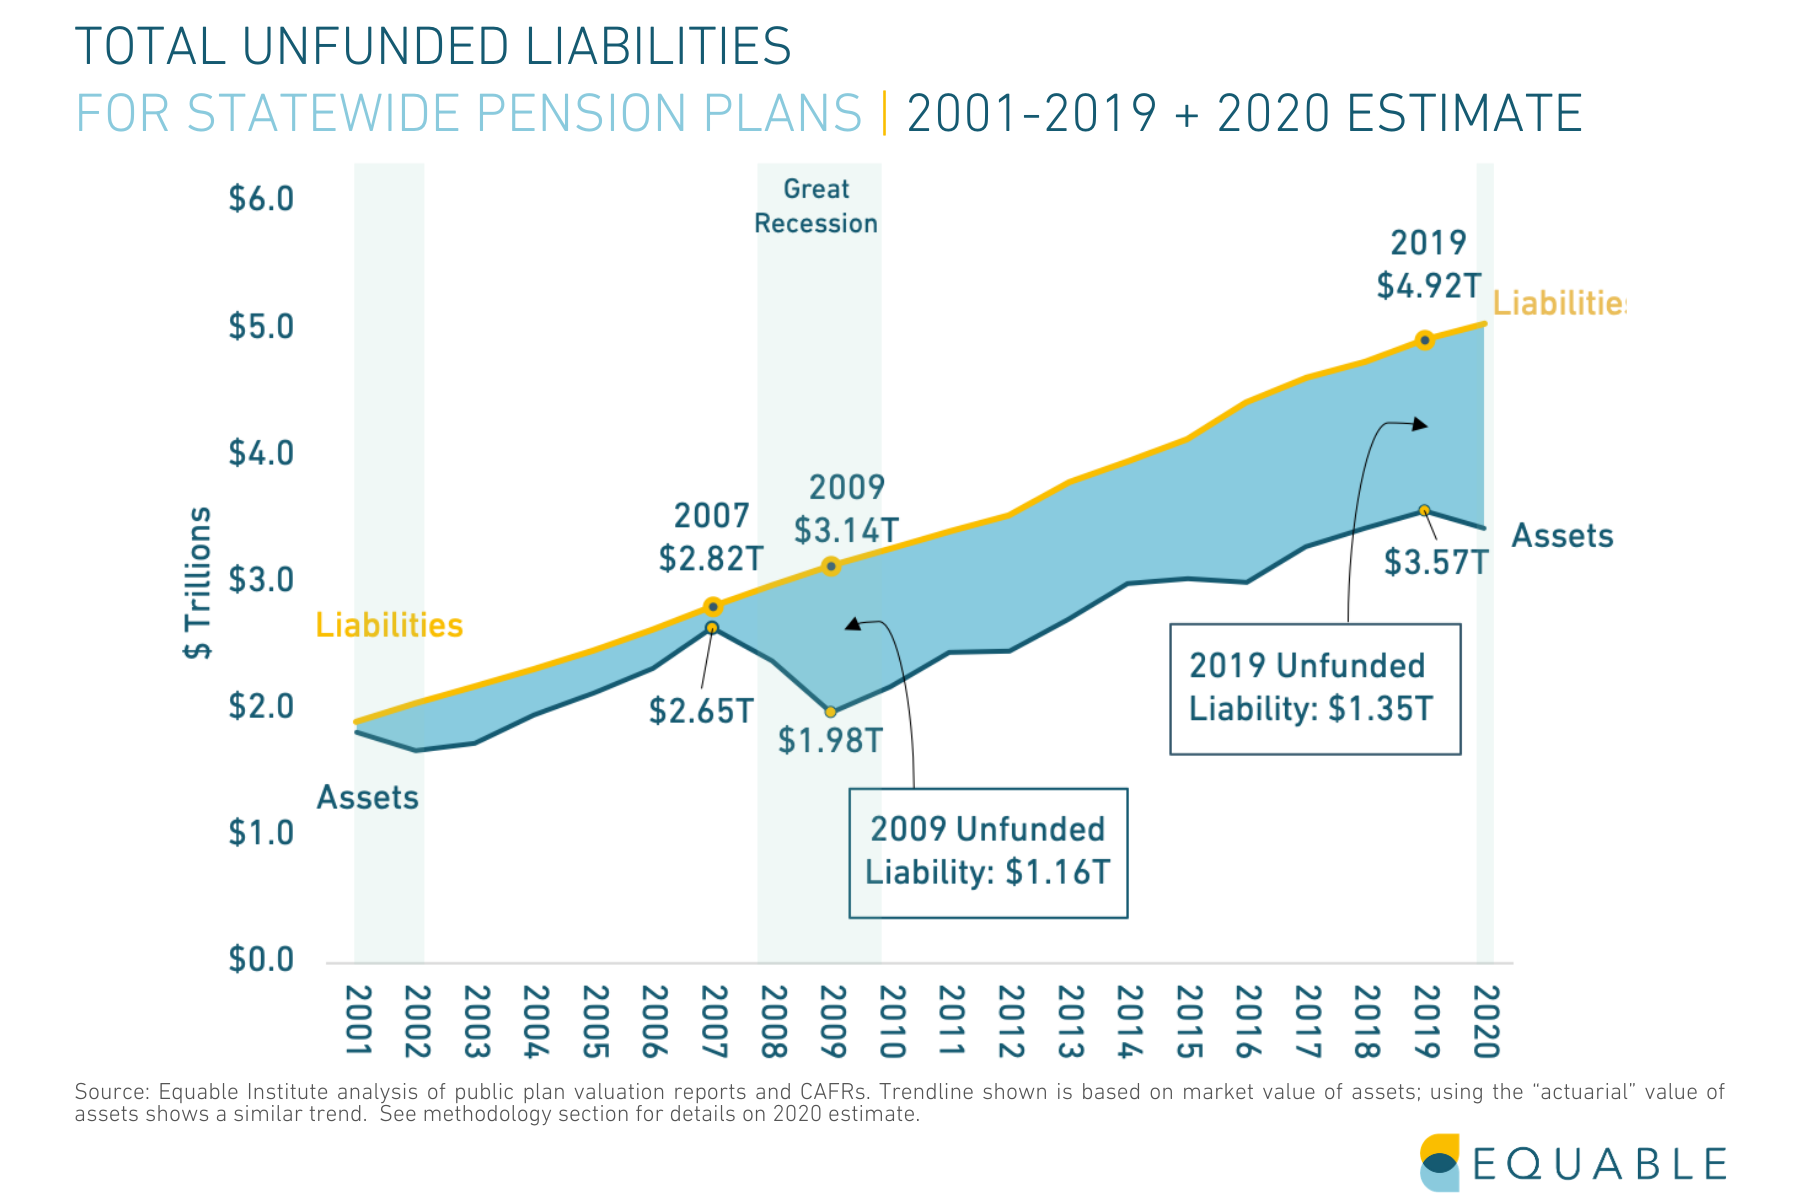 Total Unfunded Liabilities for Statewide Public Pension Plans 2001-2019+2020 Est